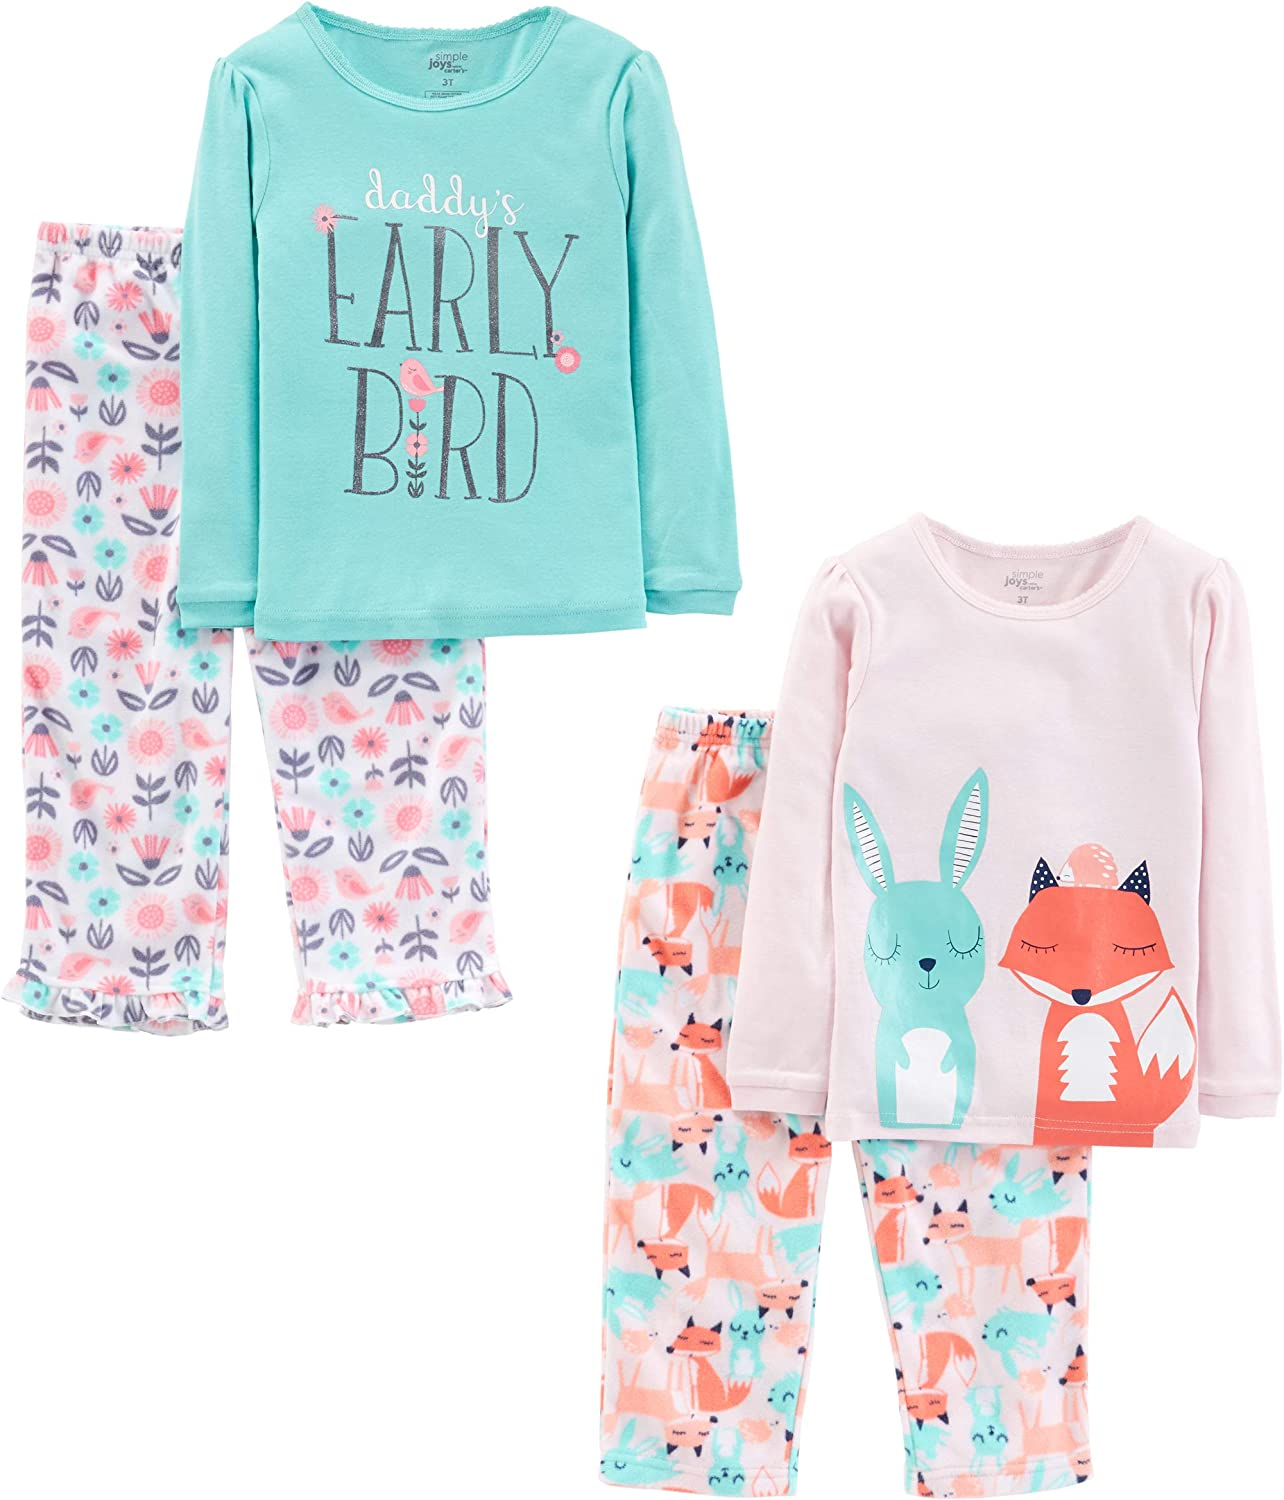 Simple Joys by Carters Little Kid and Toddler Girls 4-Piece Pajama Set